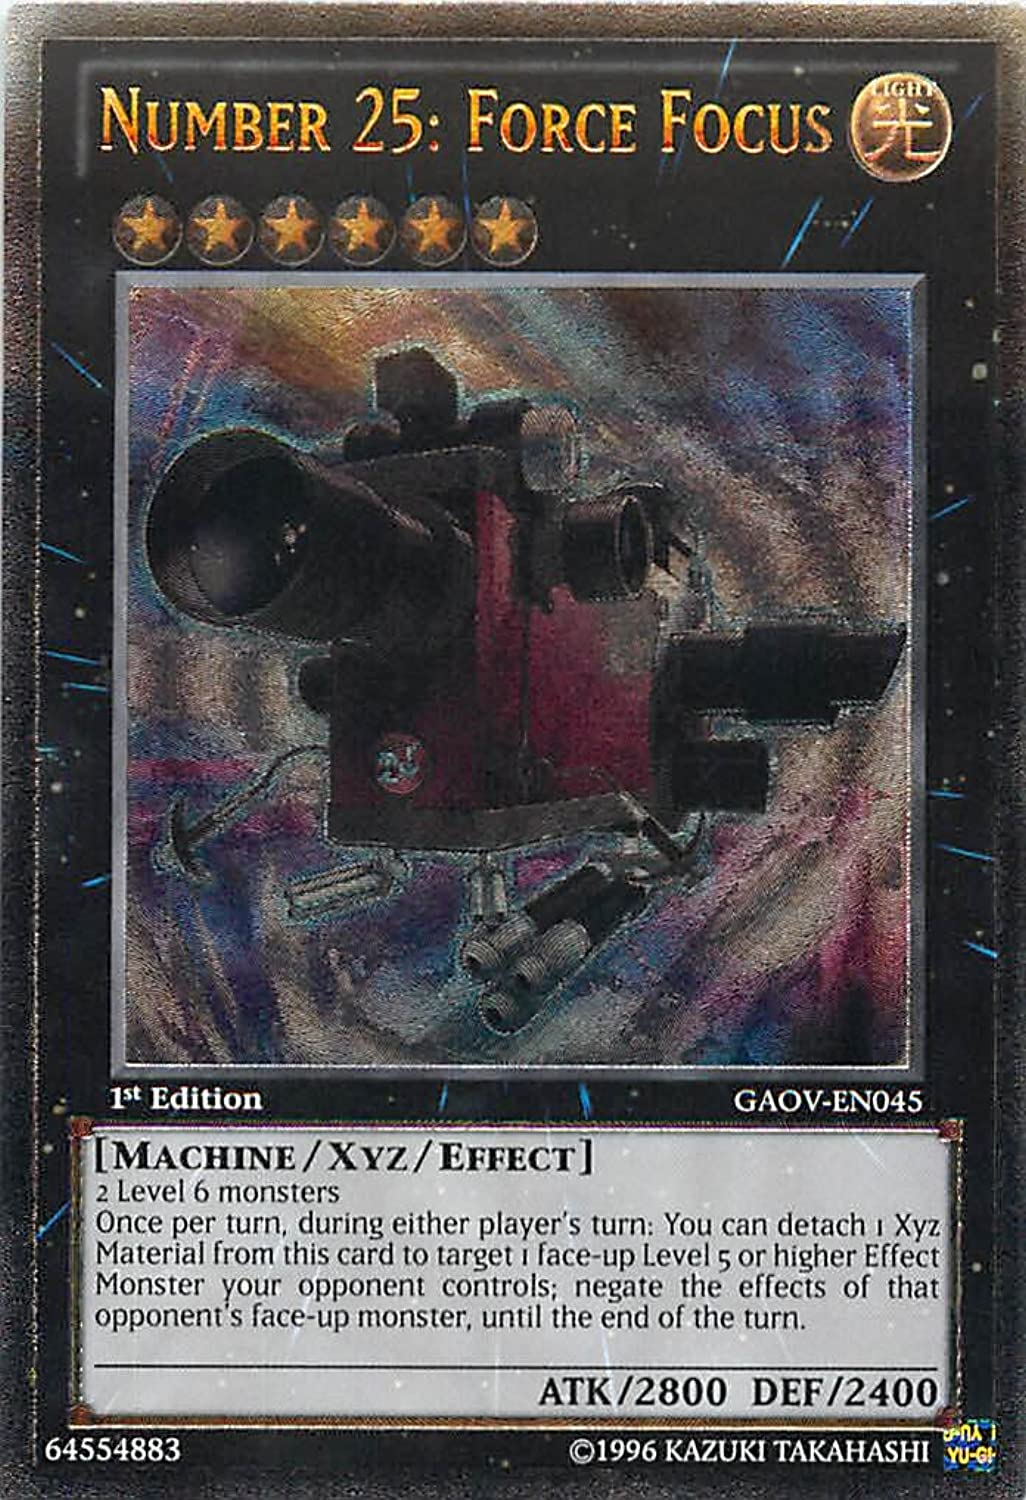 YuGiOh   Number 25  Force Focus (GAOVEN045)  Galactic Overlord  1st Edition  Ultimate Rare by YuGiOh